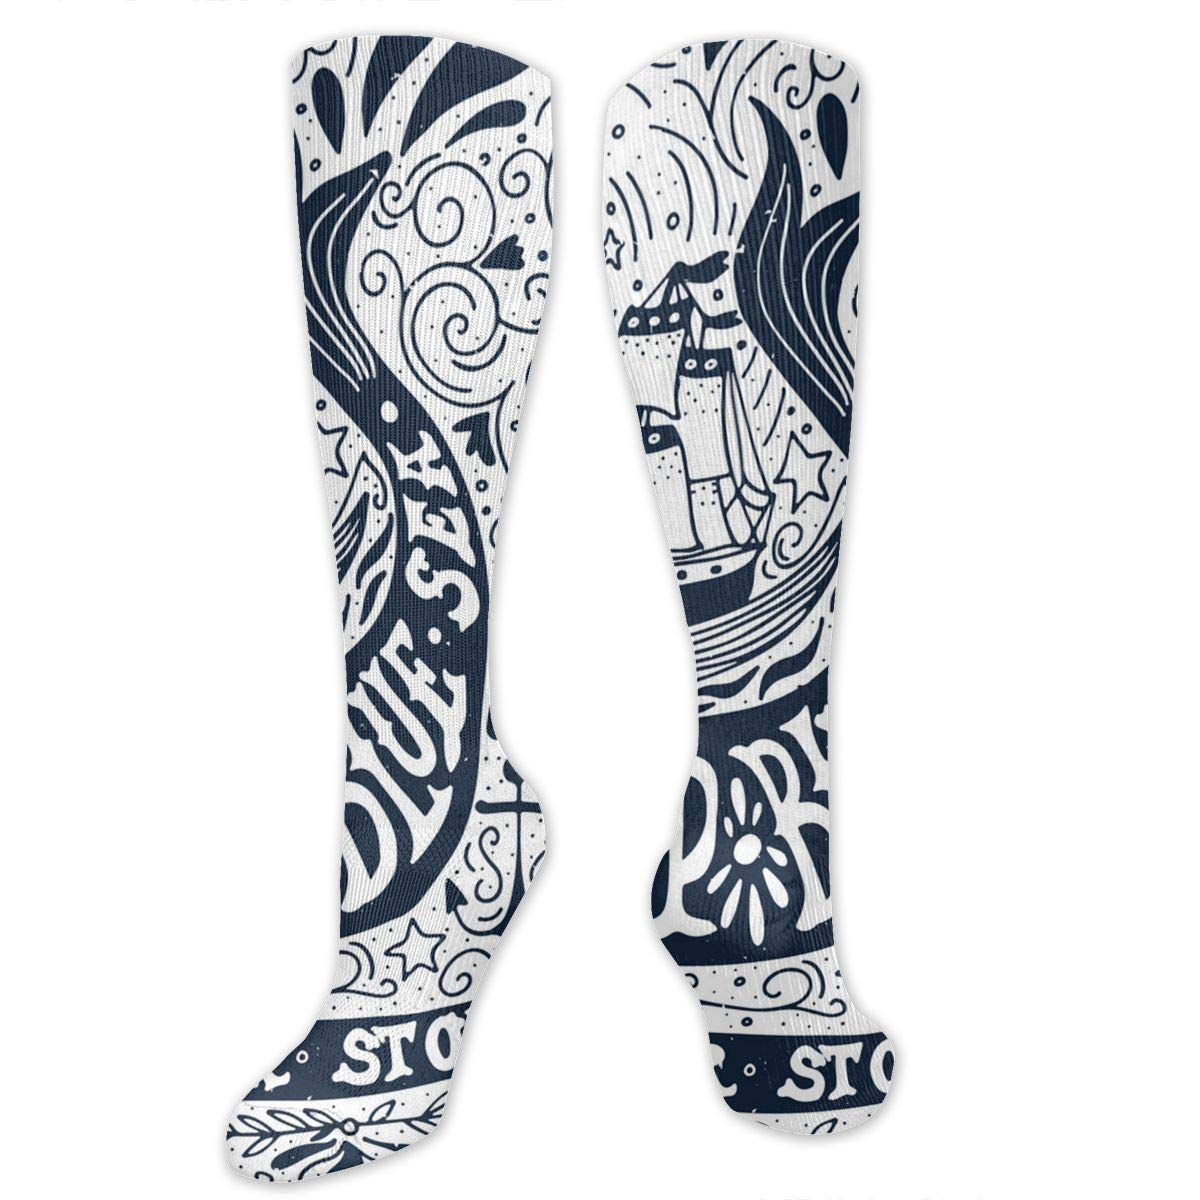 Chanwazibibiliu Classic Art with Ship Whale Quotes Mens Colorful Dress Socks Funky Men Multicolored Pattern Fashionable Fun Crew Cotton Socks